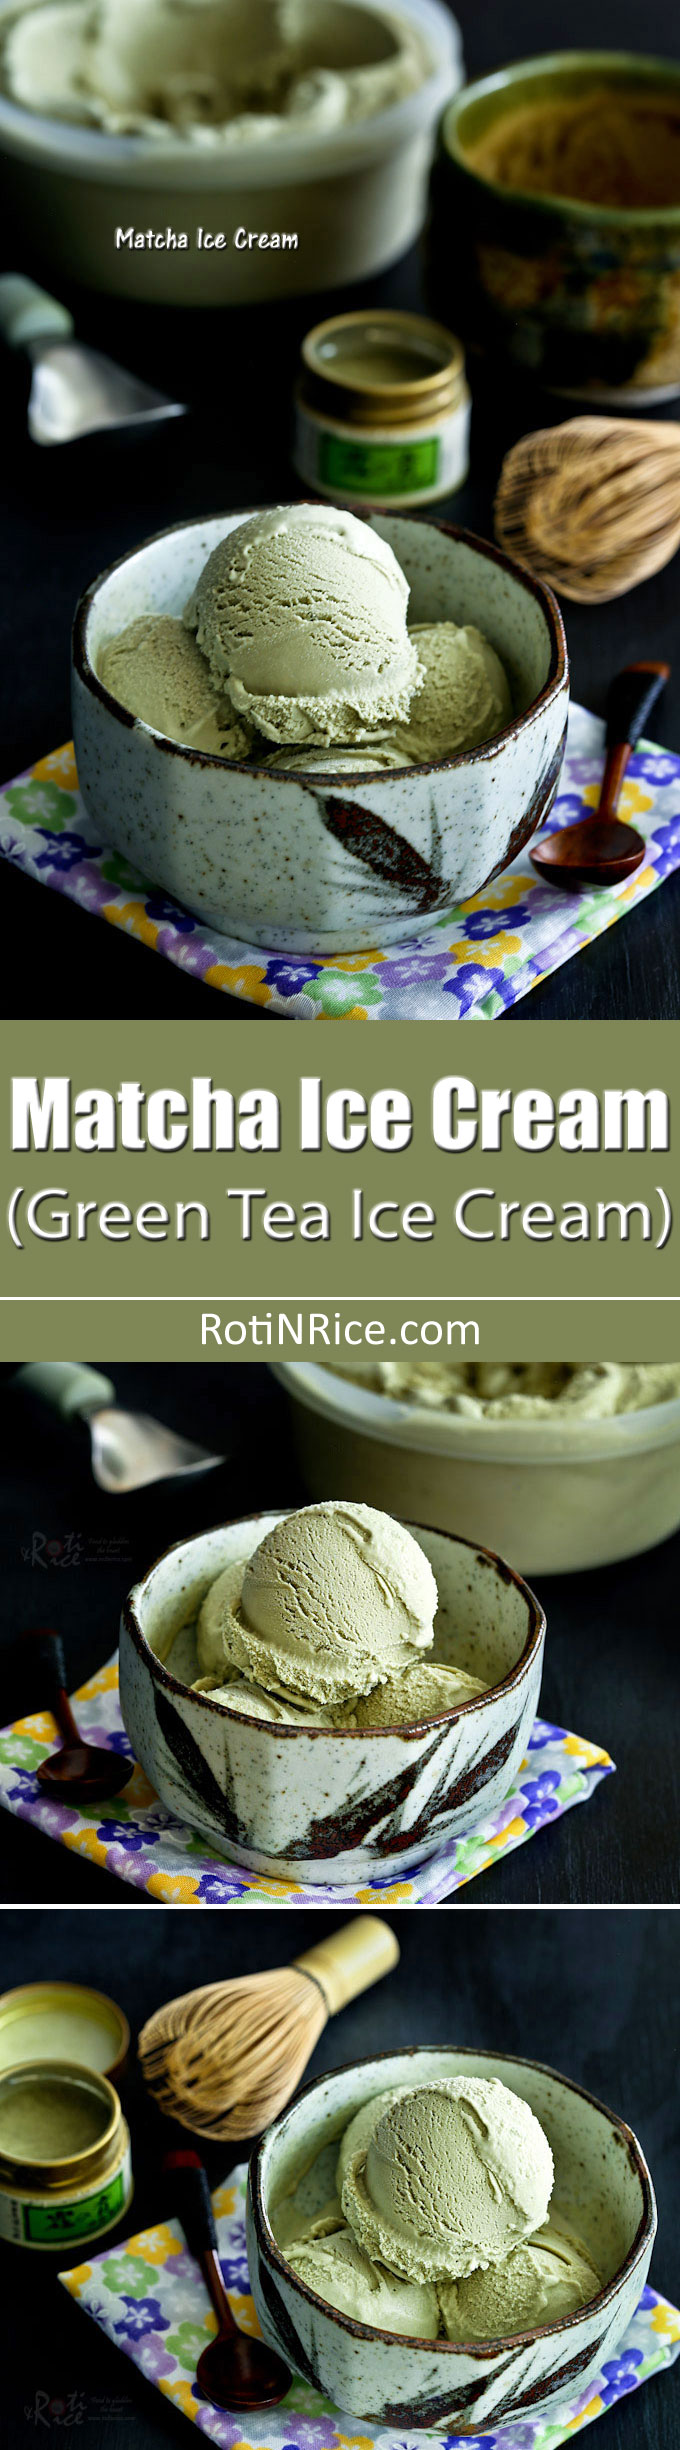 Treat family and friends to some delicious homemade Matcha Ice Cream. This simple eggless recipe is full of green tea flavor. | RotiNRice.com